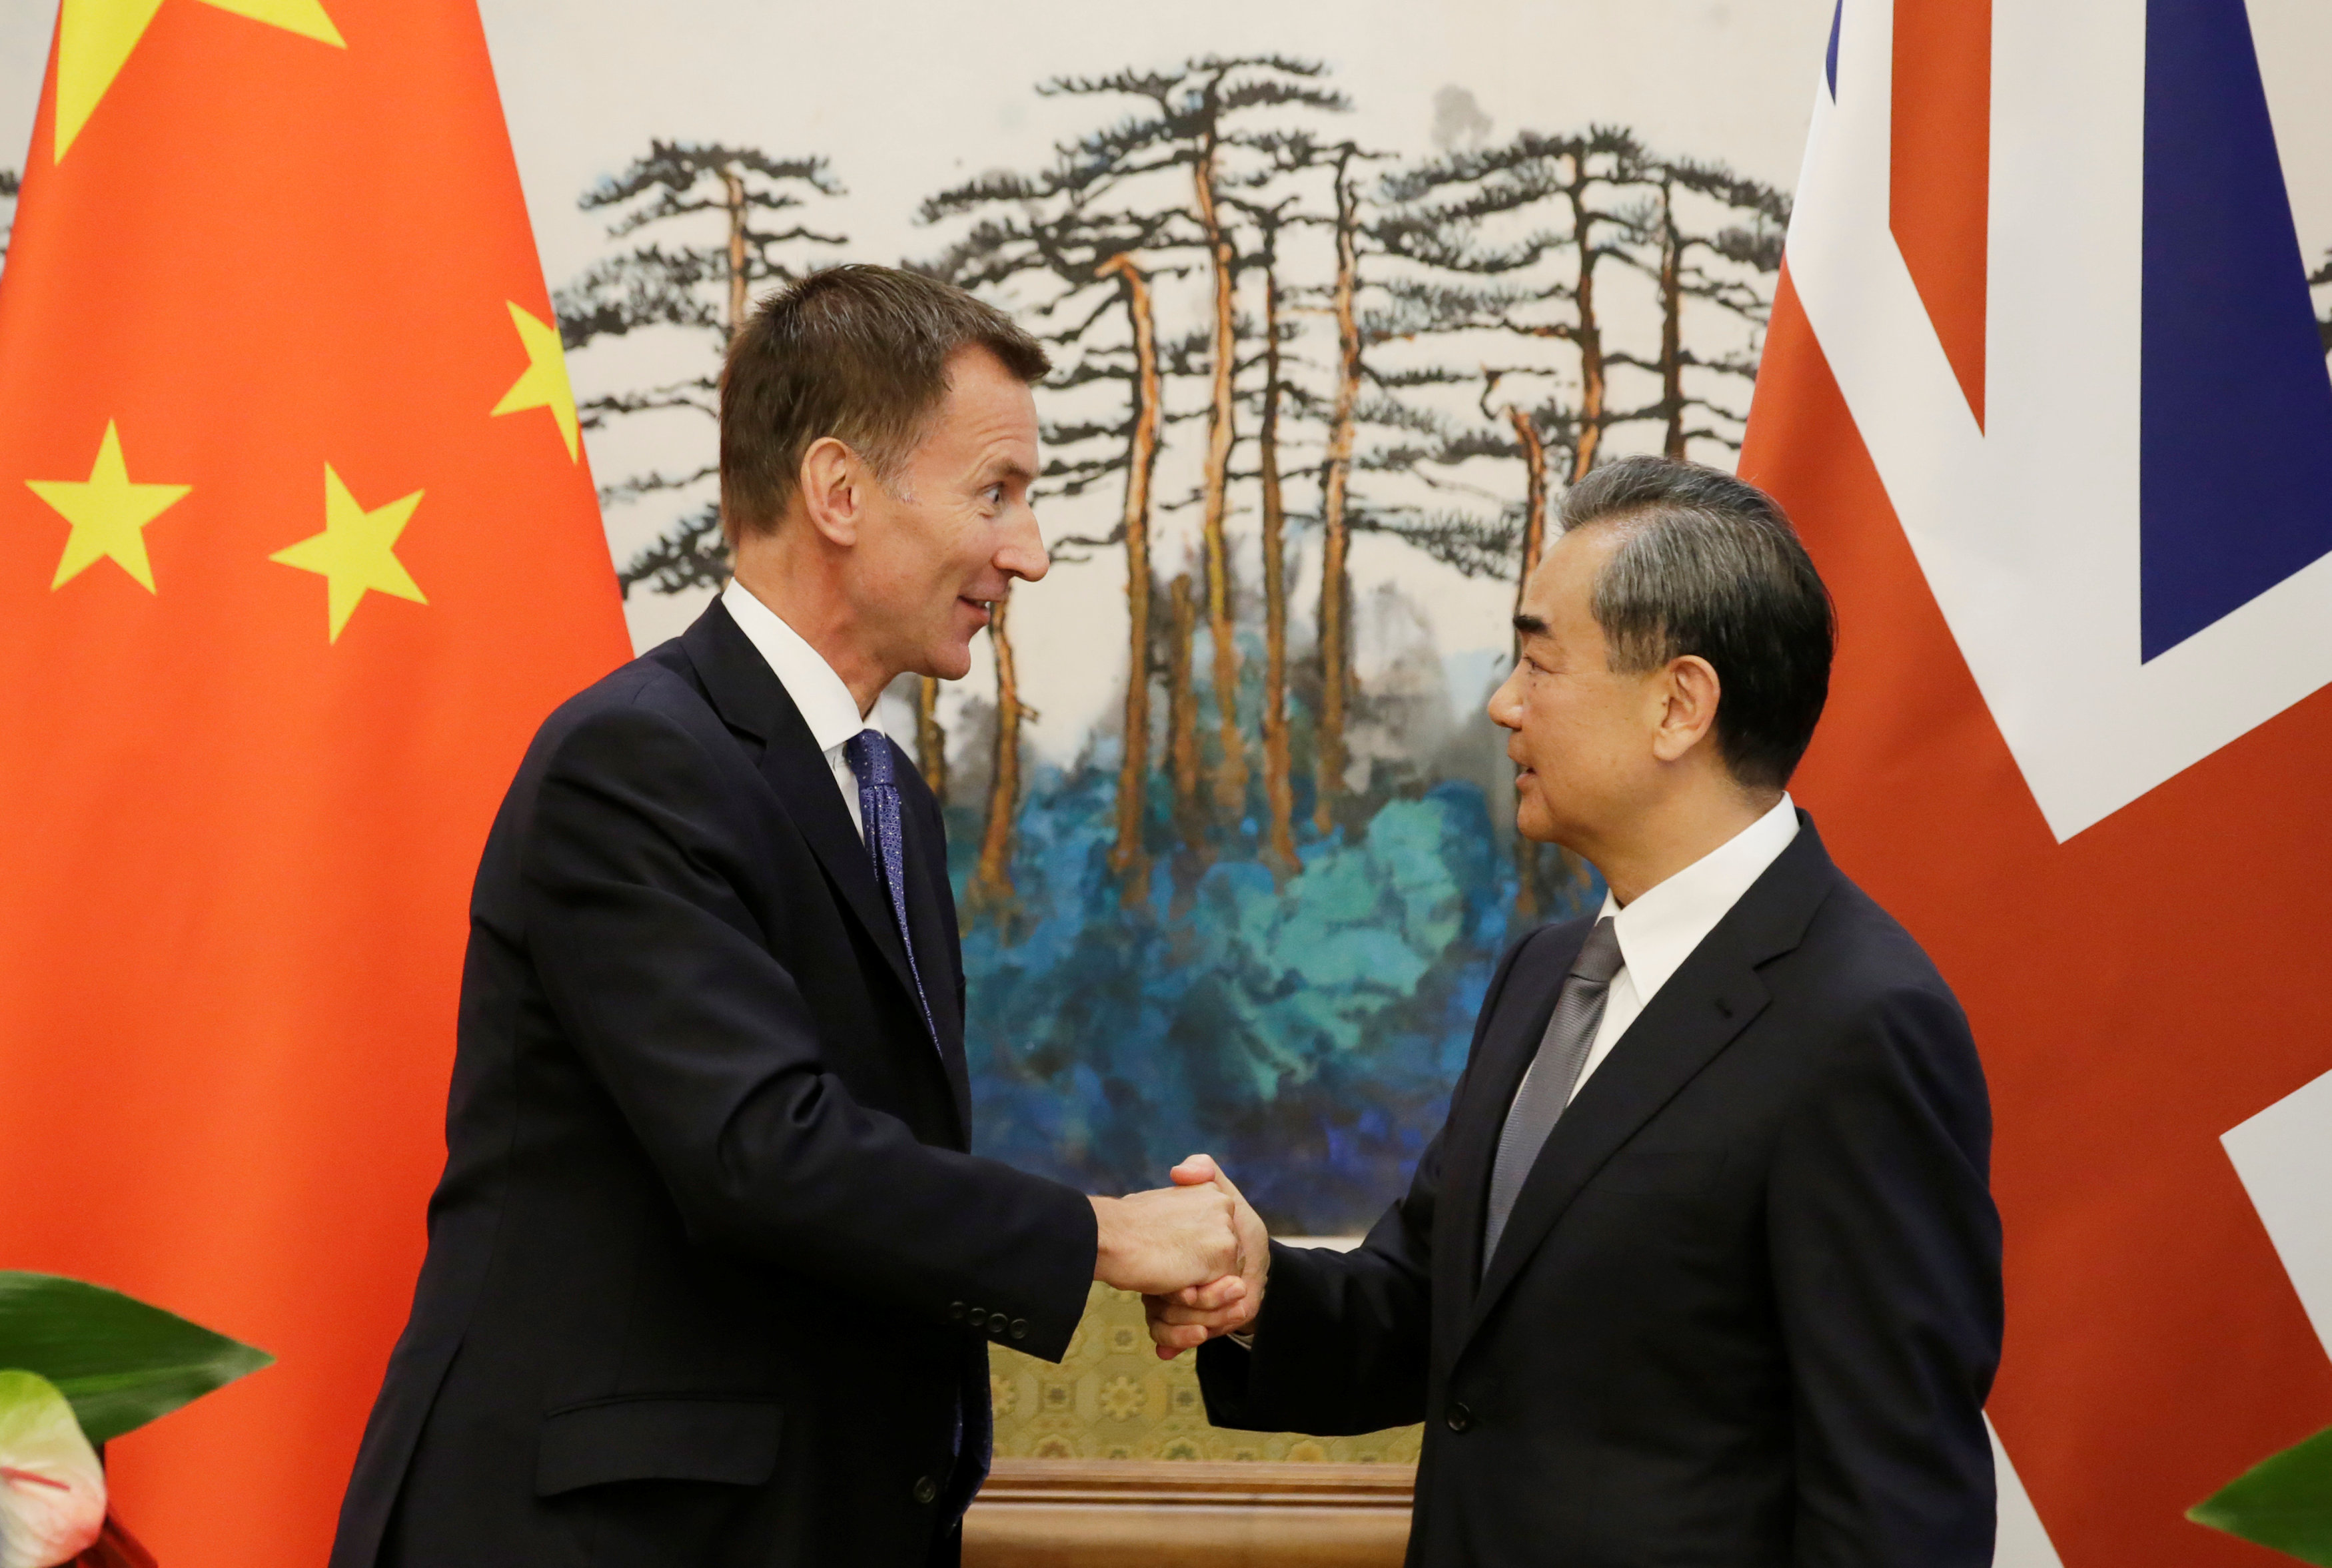 Britain's Foreign Secretary Jeremy Hunt shakes hands with China's Foreign Minister Wang Yi in Beijing